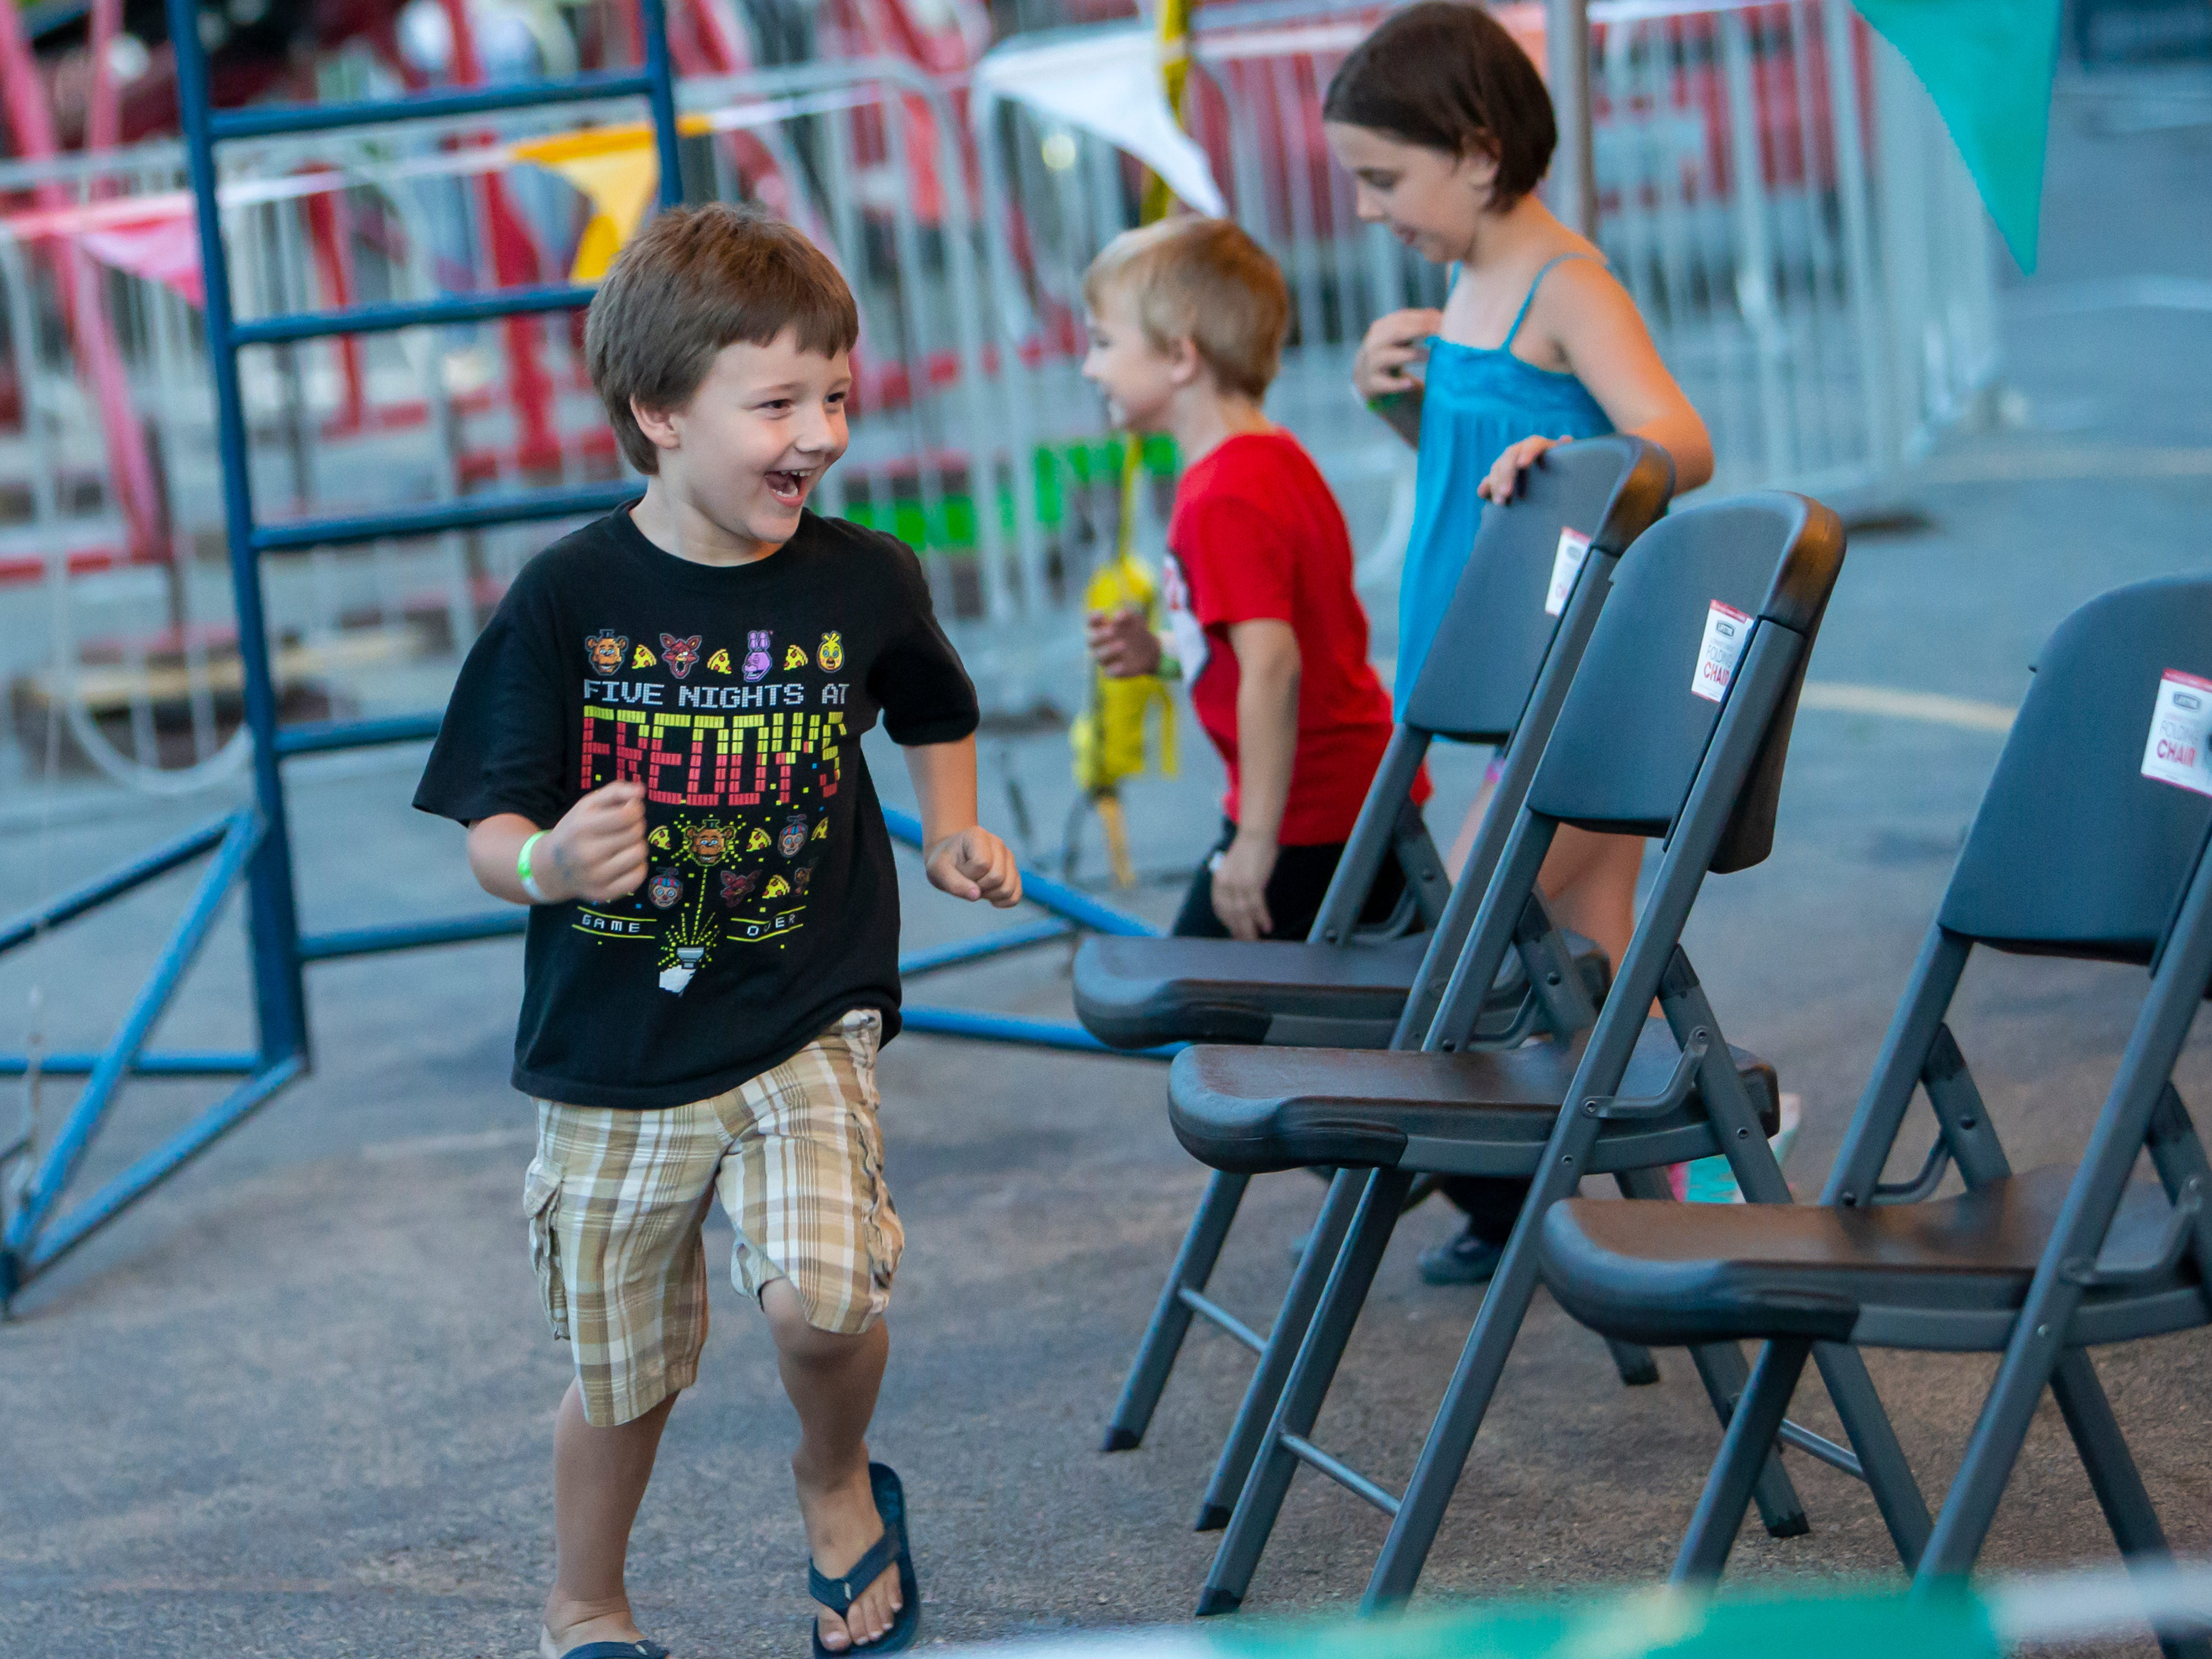 Children races around chairs playing musical chairs at the Mr. Ed's Magical Circus Show event during the Winnebago County Fair on Friday, Aug. 3, 2018.